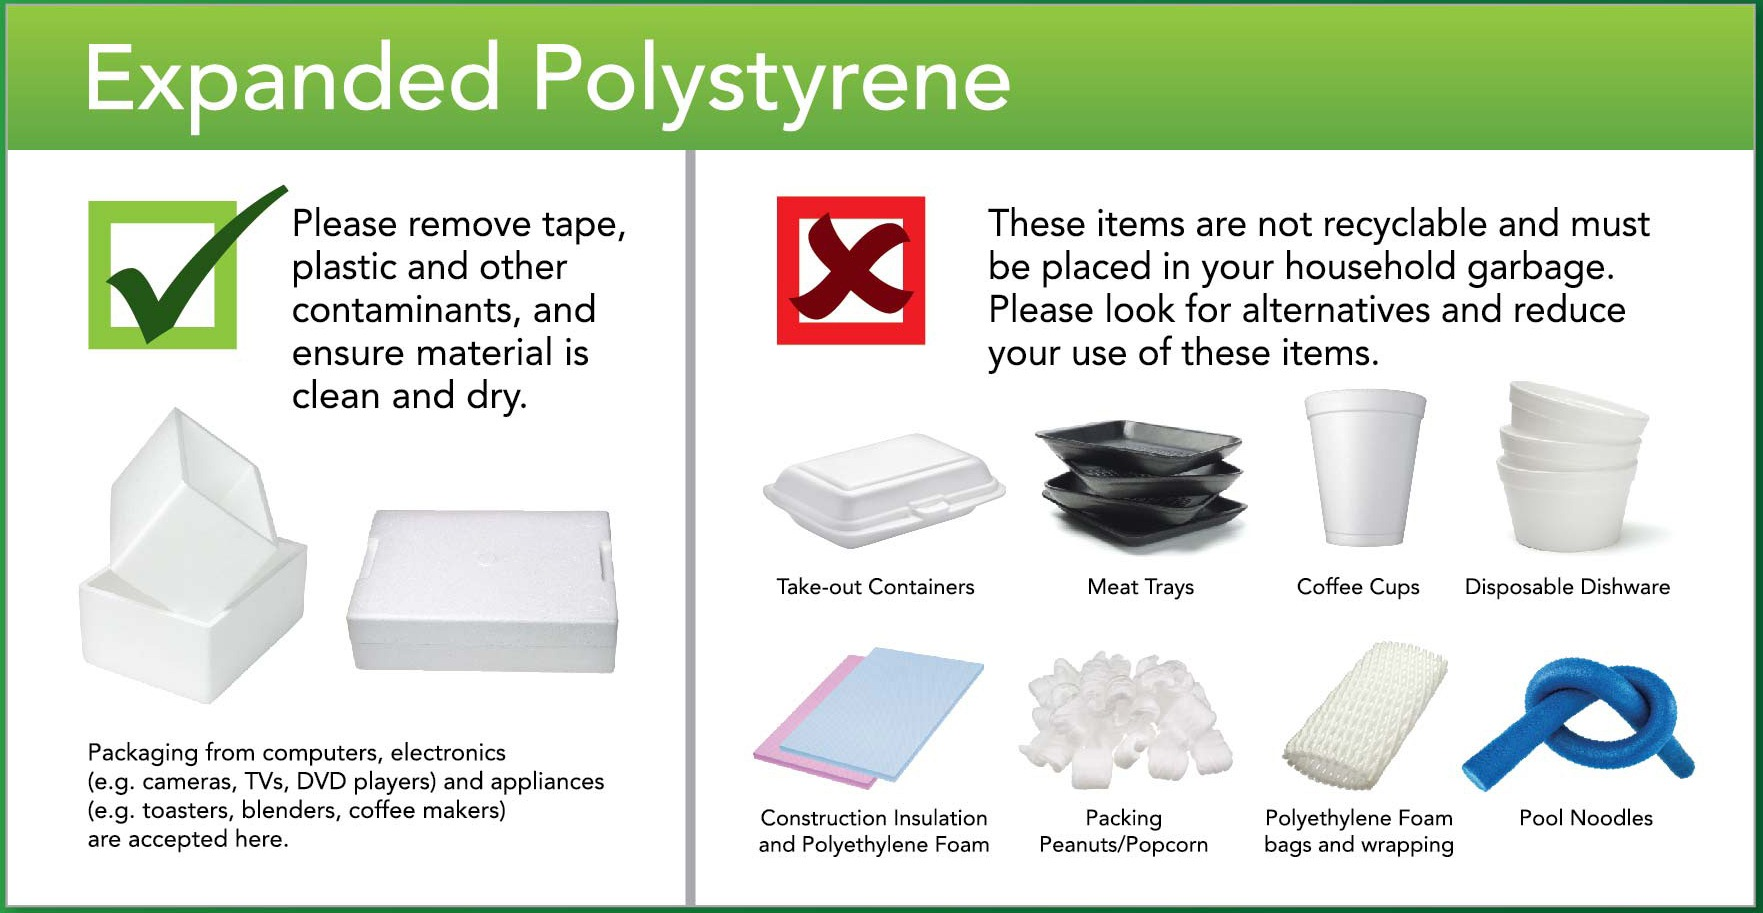 Polystyrene Municipality Of Brockton